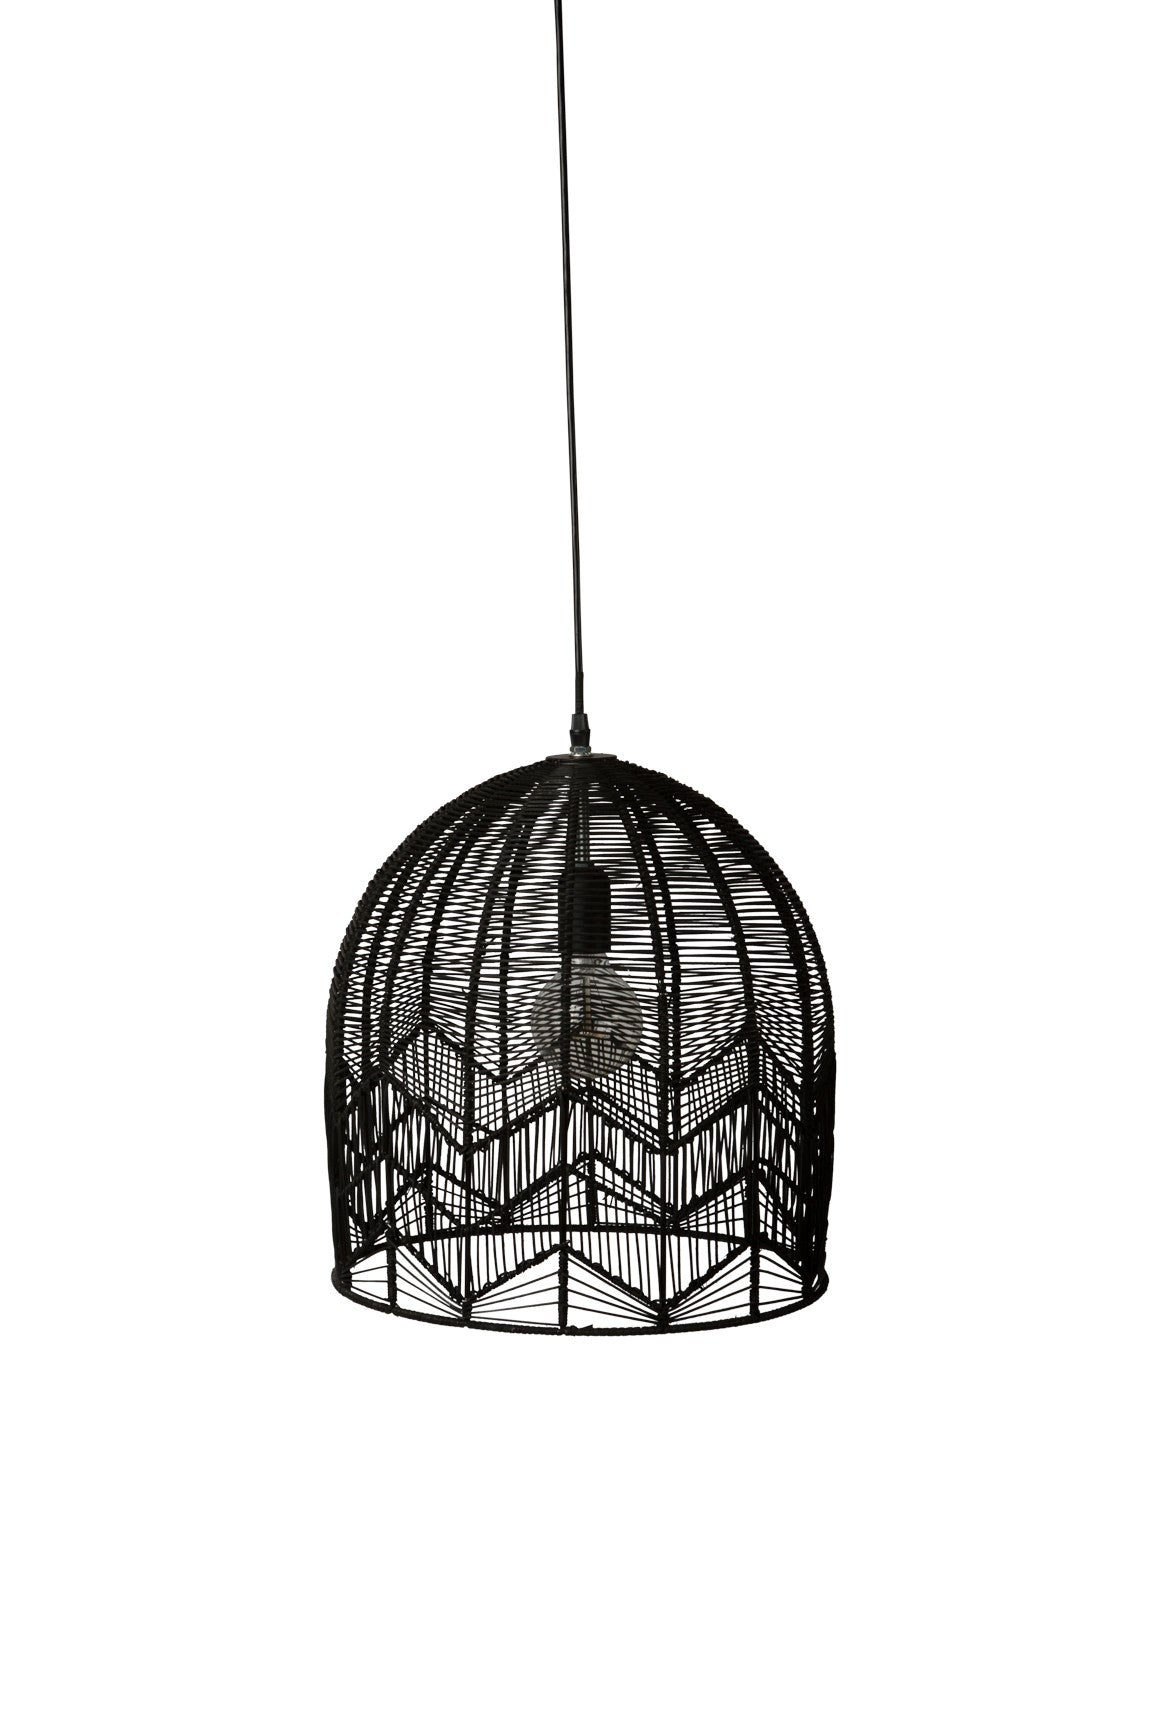 LACE RATTAN LIGHT - BLACK (LARGE-PRE ORDER)  sc 1 st  Milly u0026 Eugene & LACE RATTAN LIGHT - BLACK (LARGE-PRE ORDER) - Milly and Eugene azcodes.com